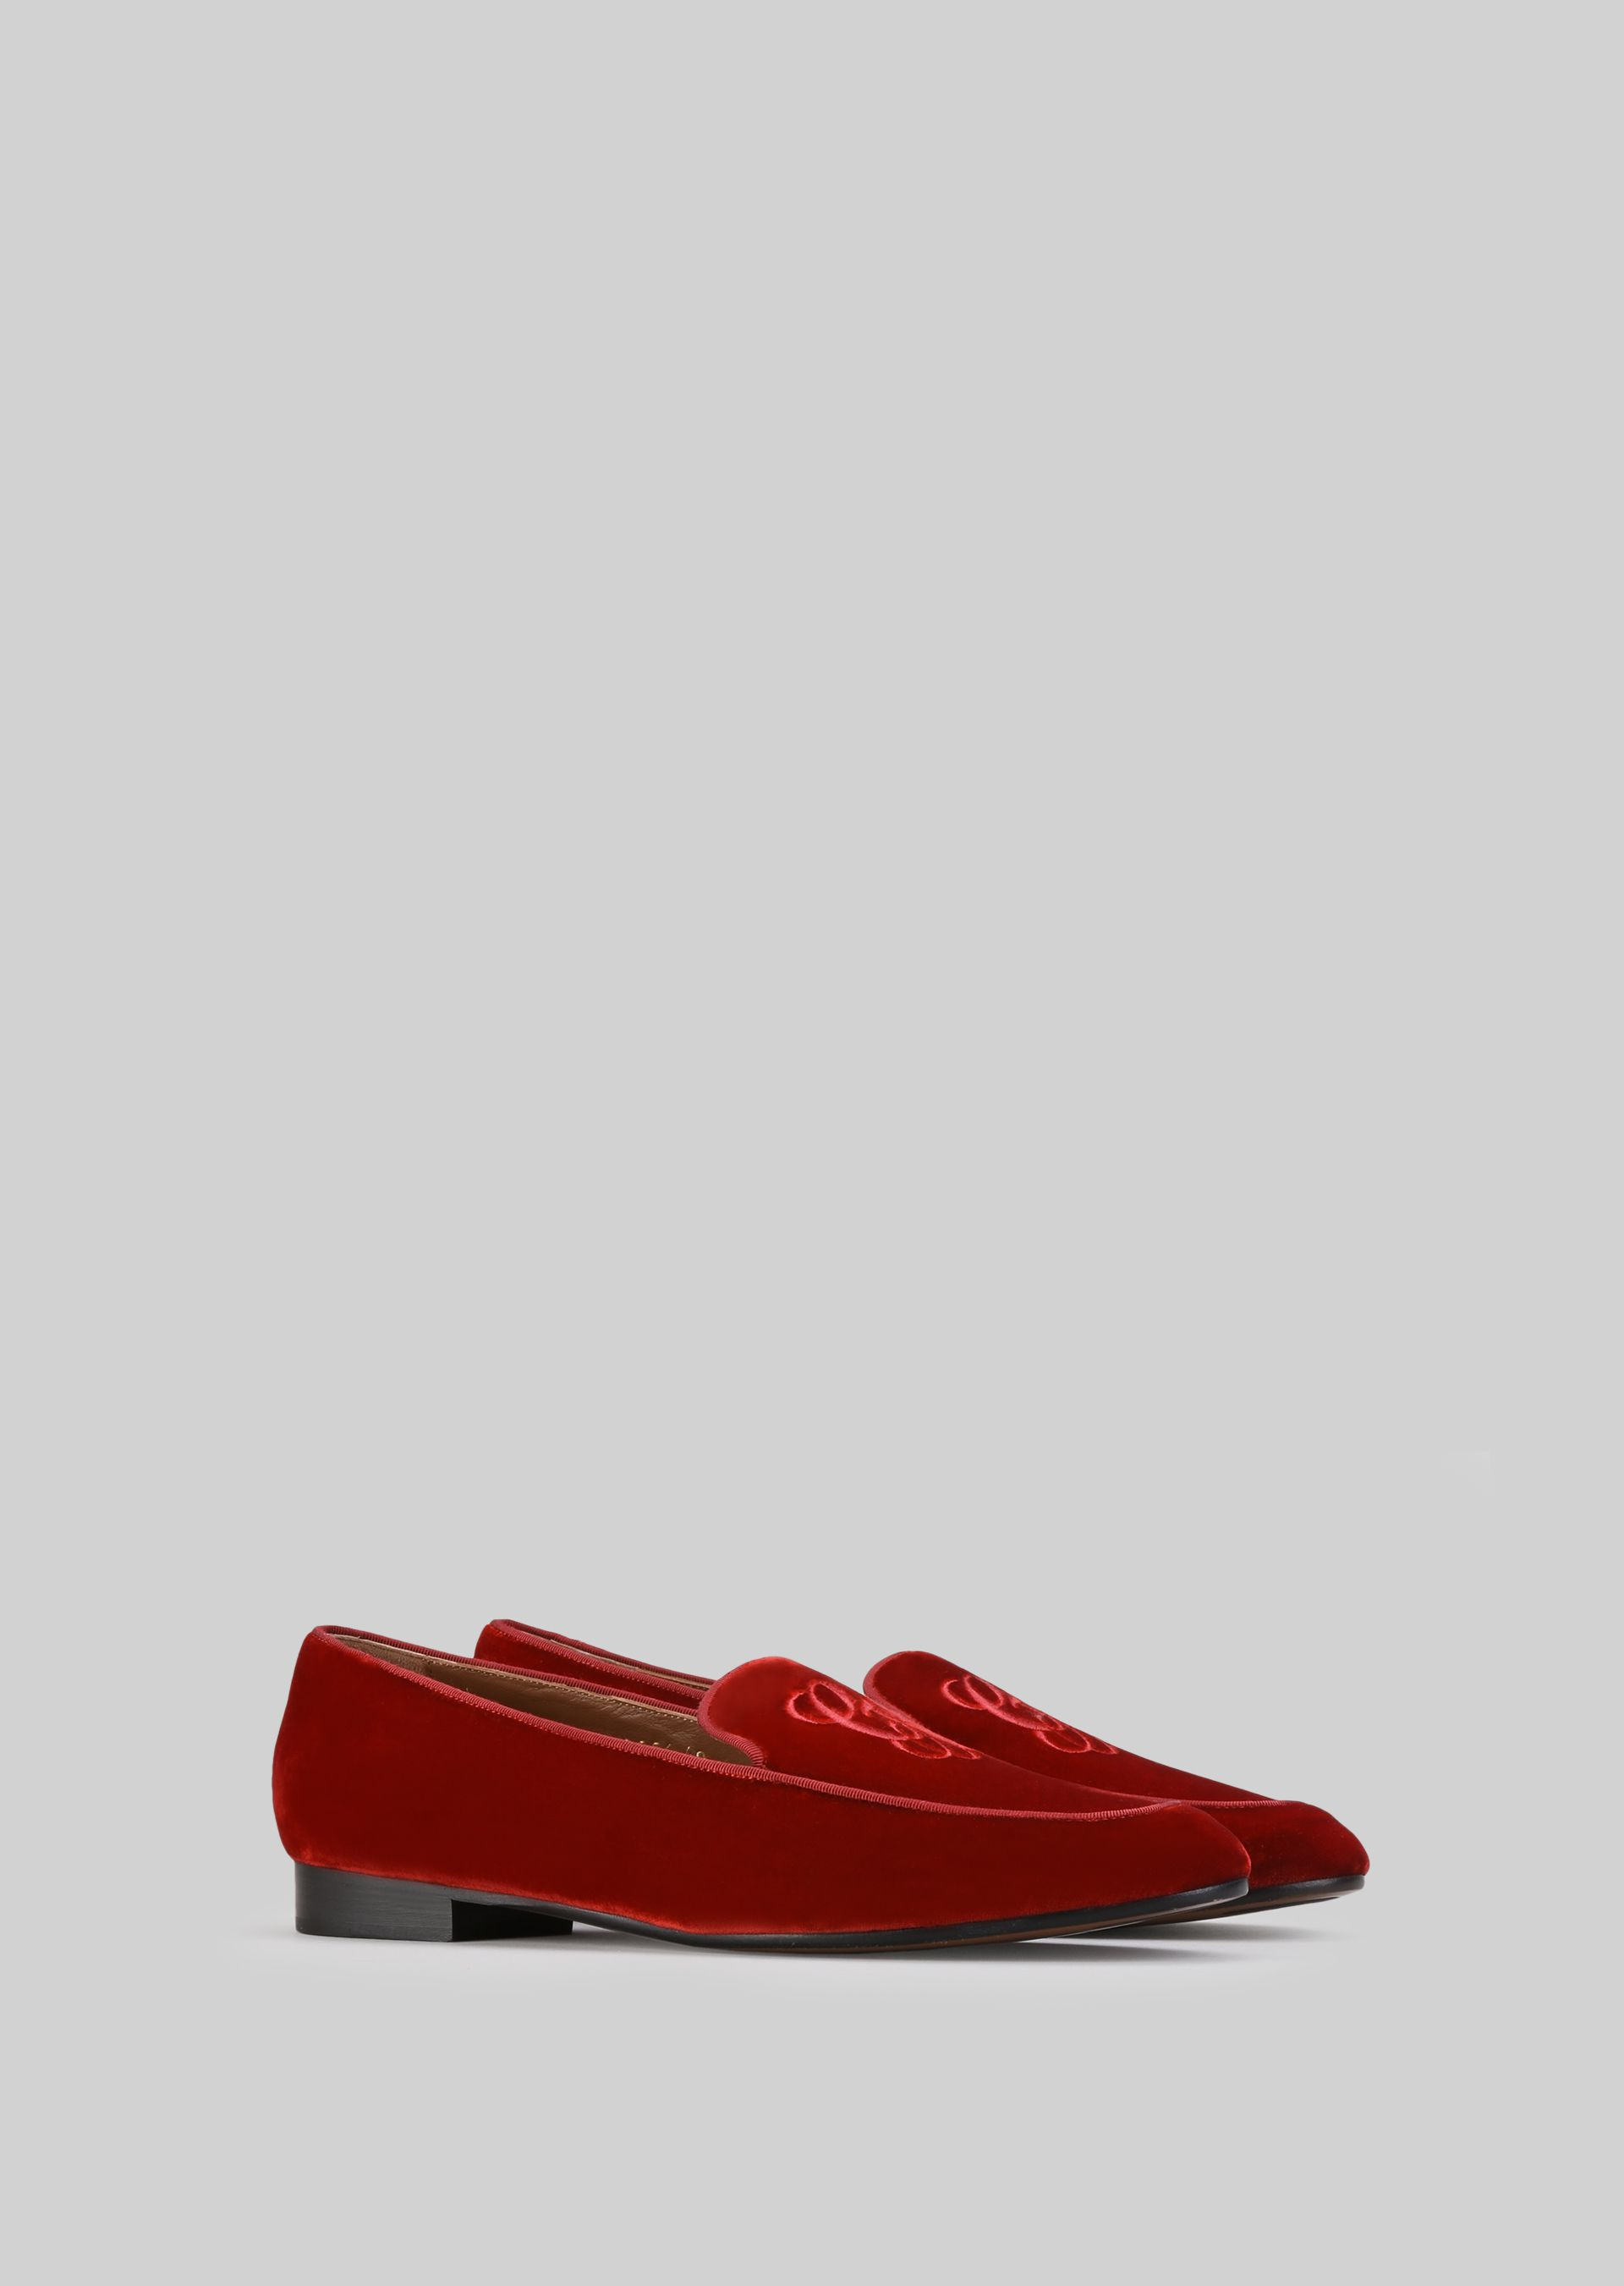 GIORGIO ARMANI VELVET LOAFERS Loafers D r